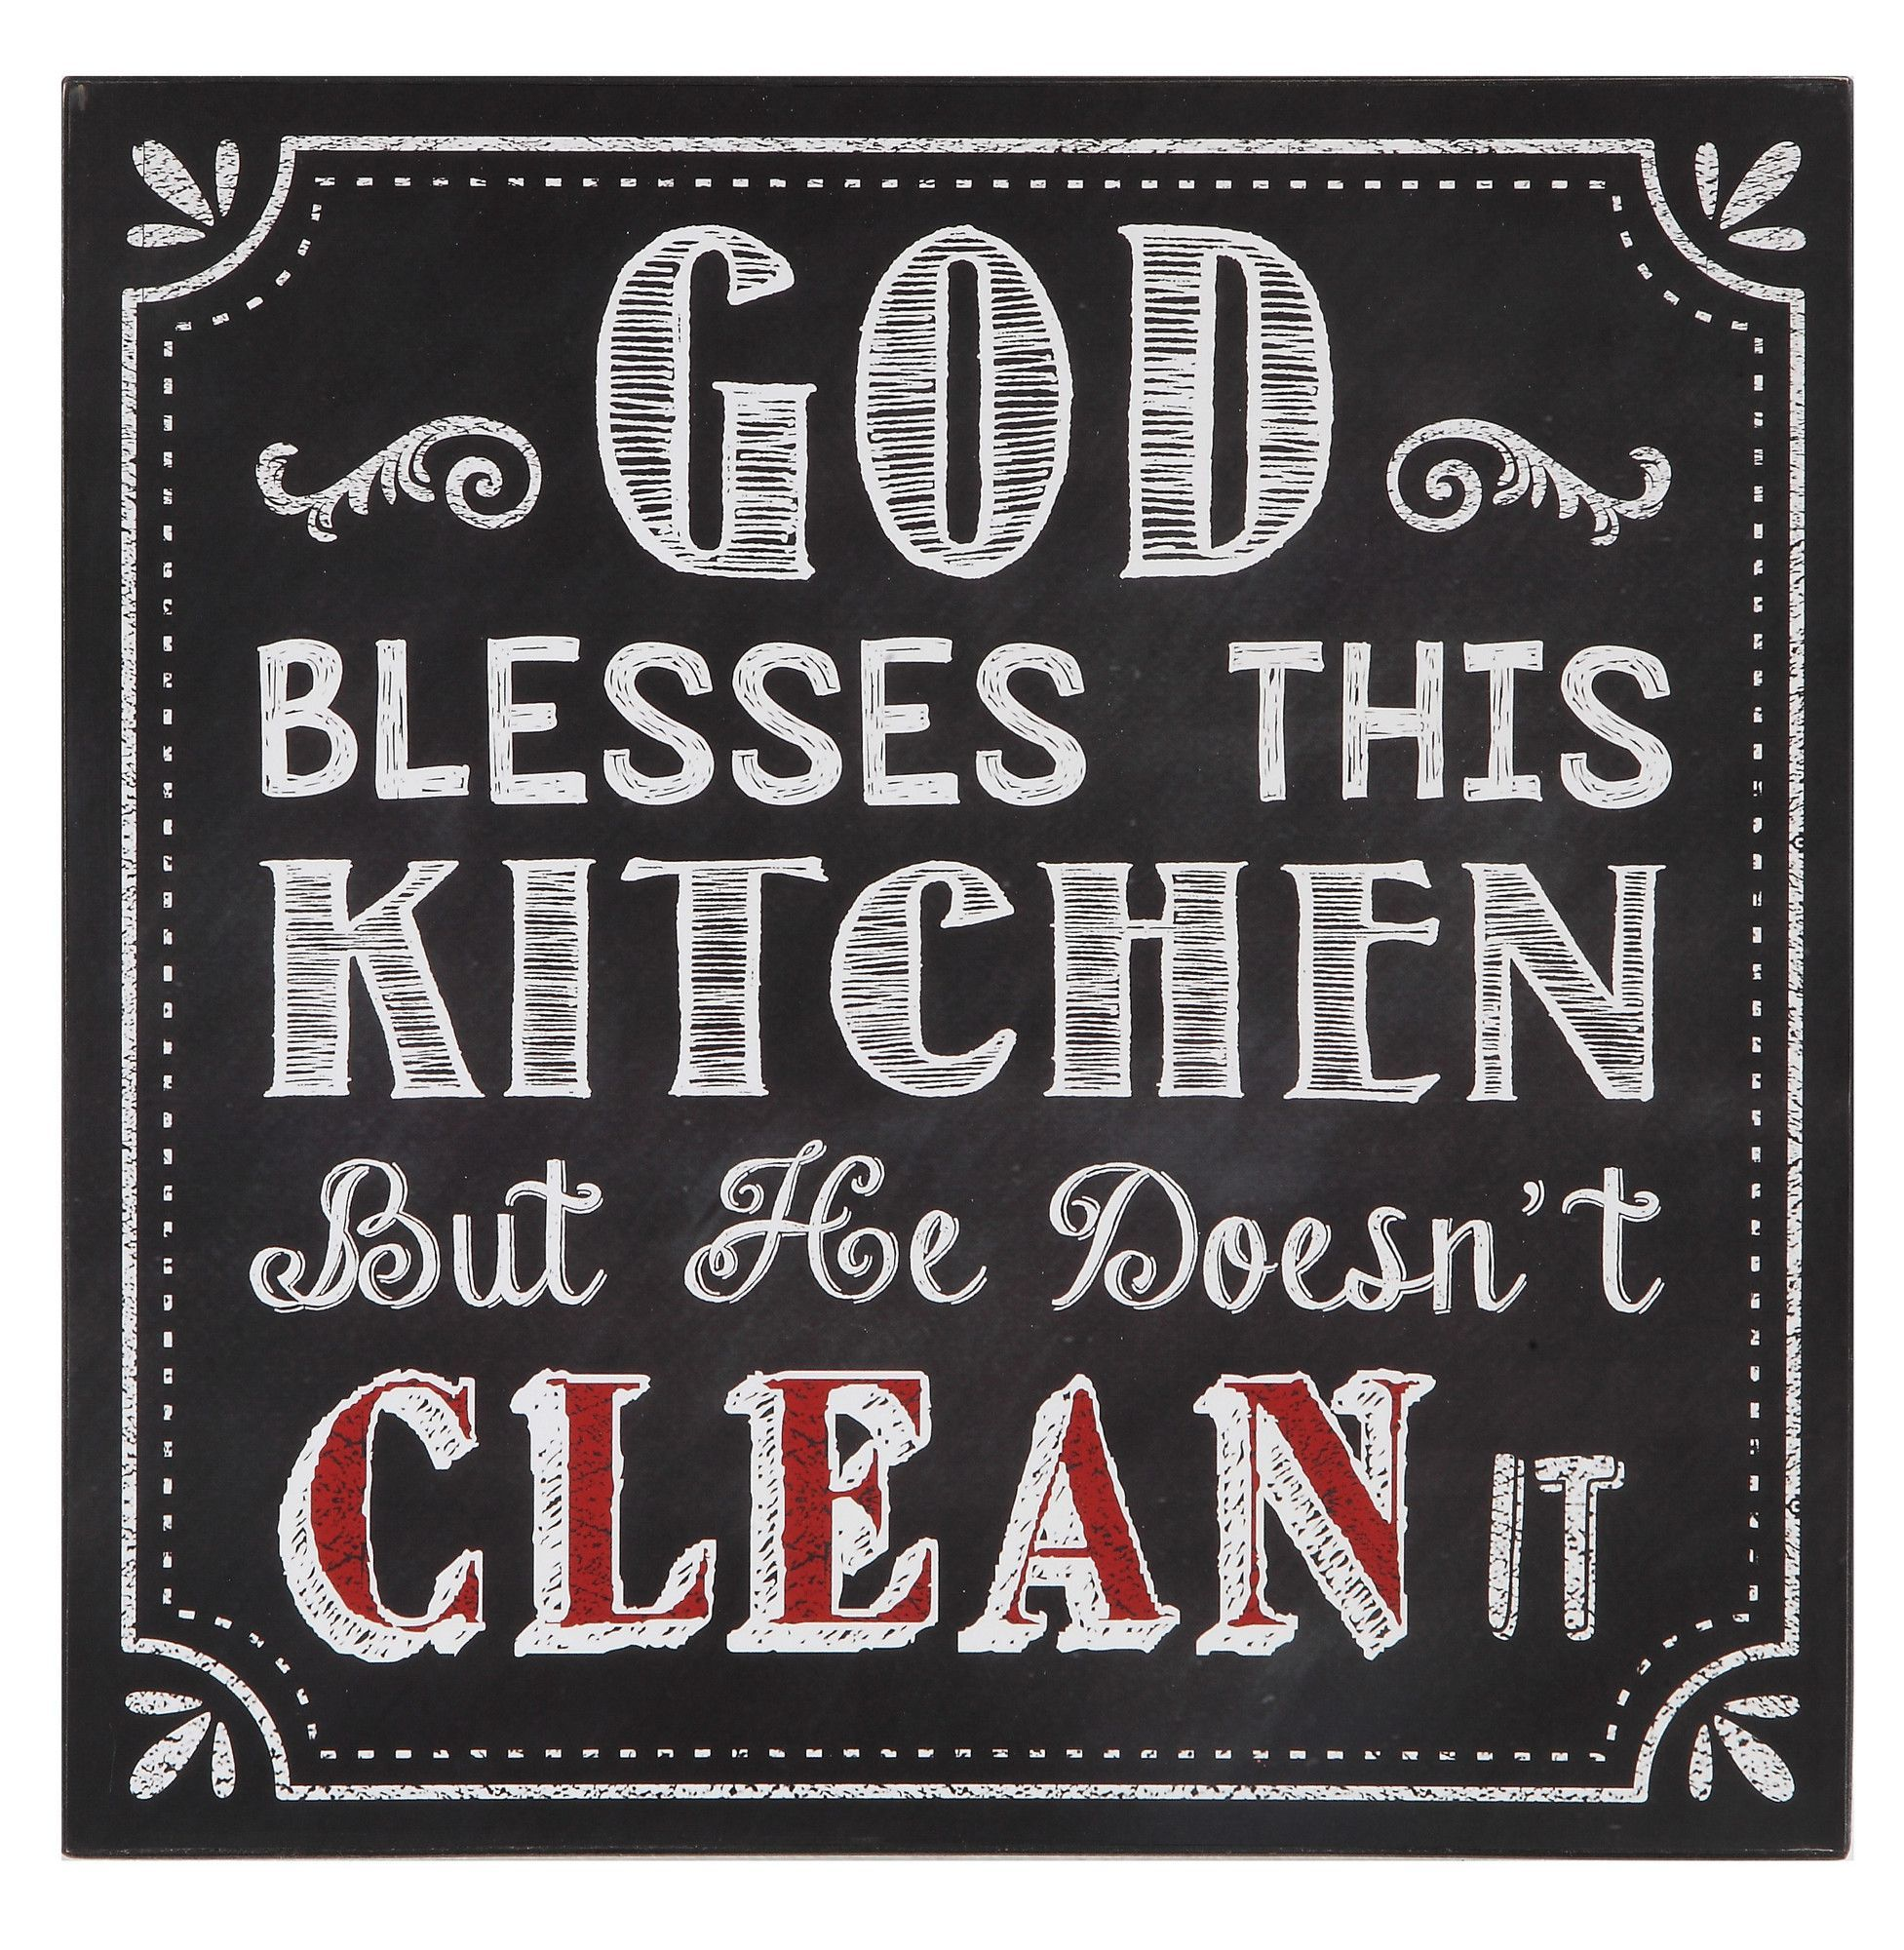 Urban homestead god blesses this kitchen wall décor products